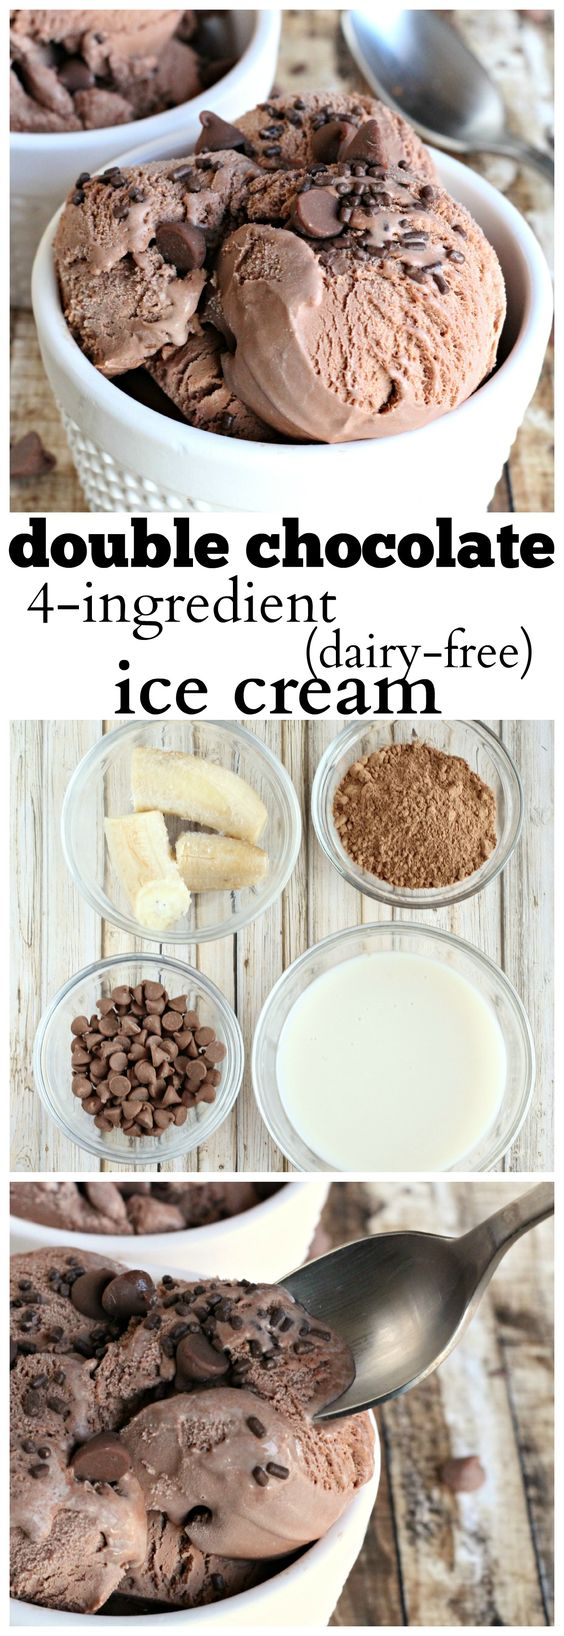 Double Chocolate ice cream, made dairy free with only 4 ingredients.